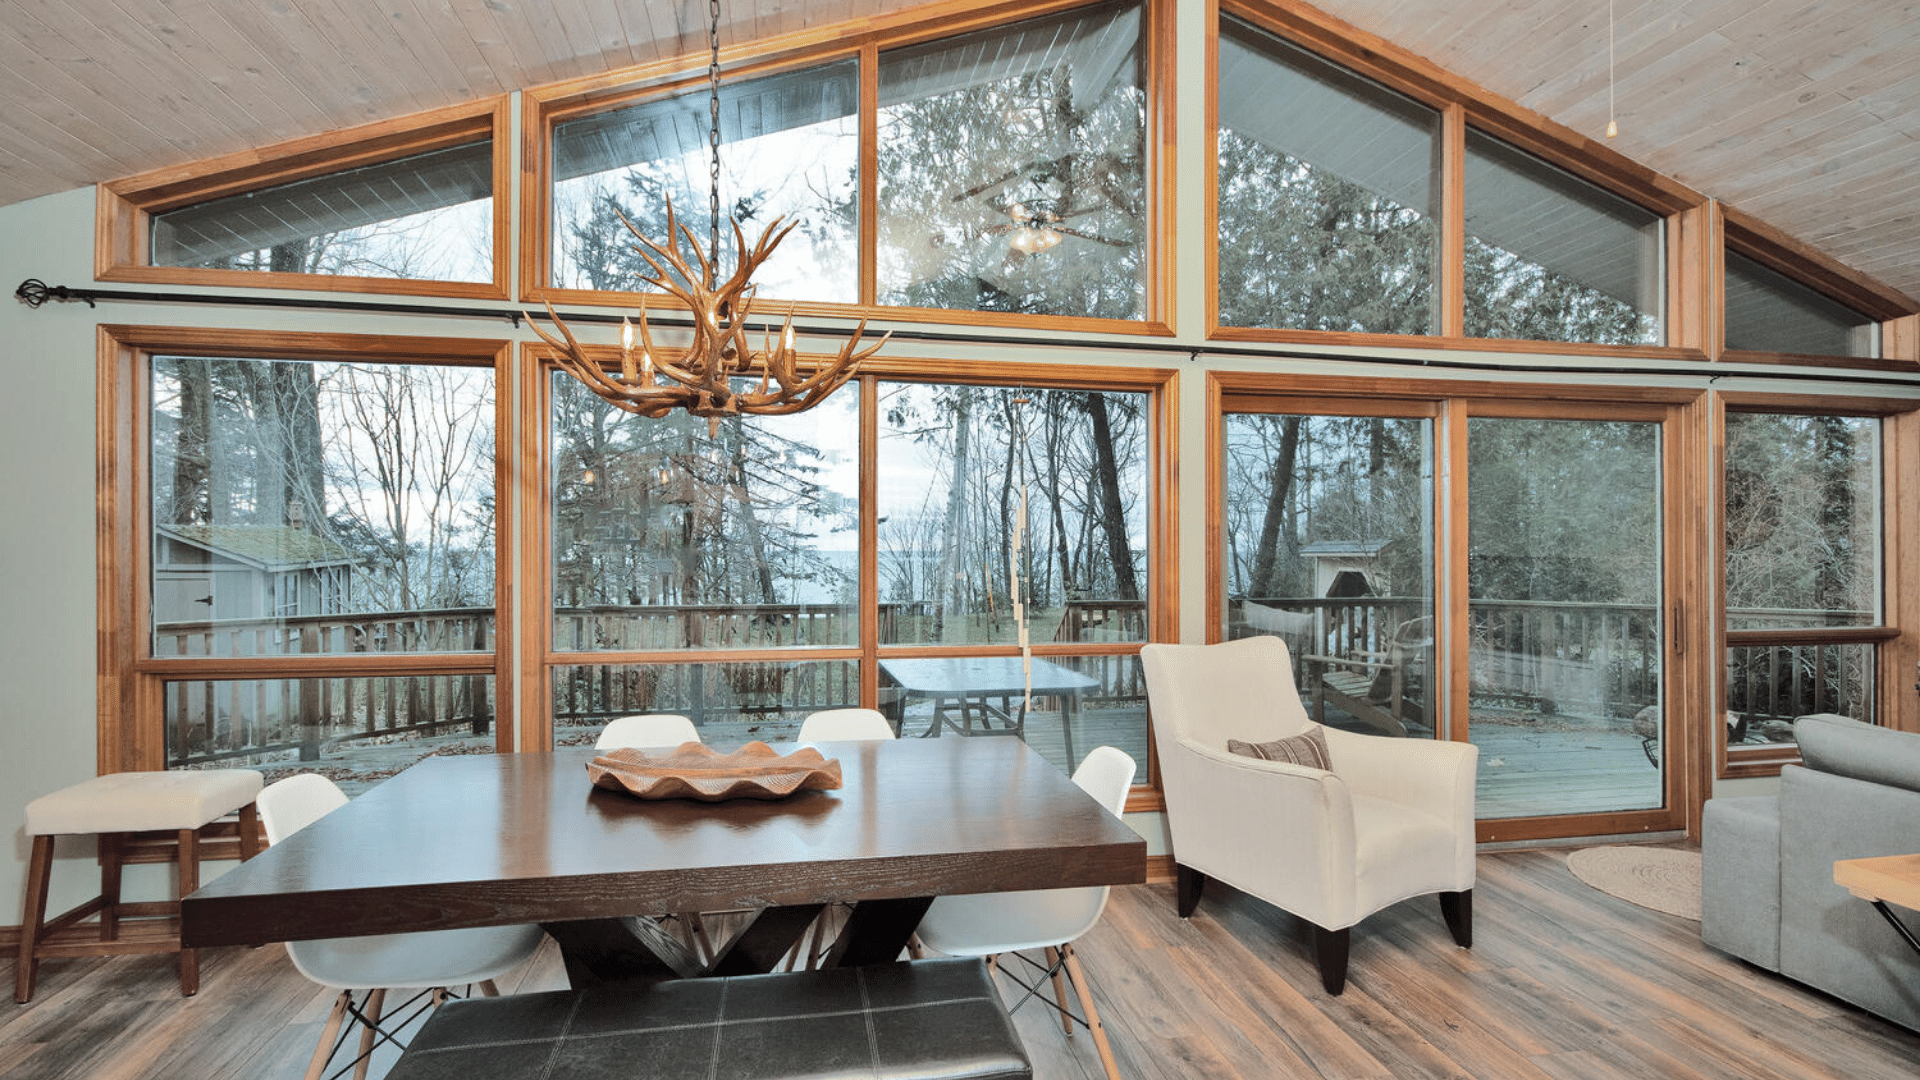 Beautiful views inside and out!